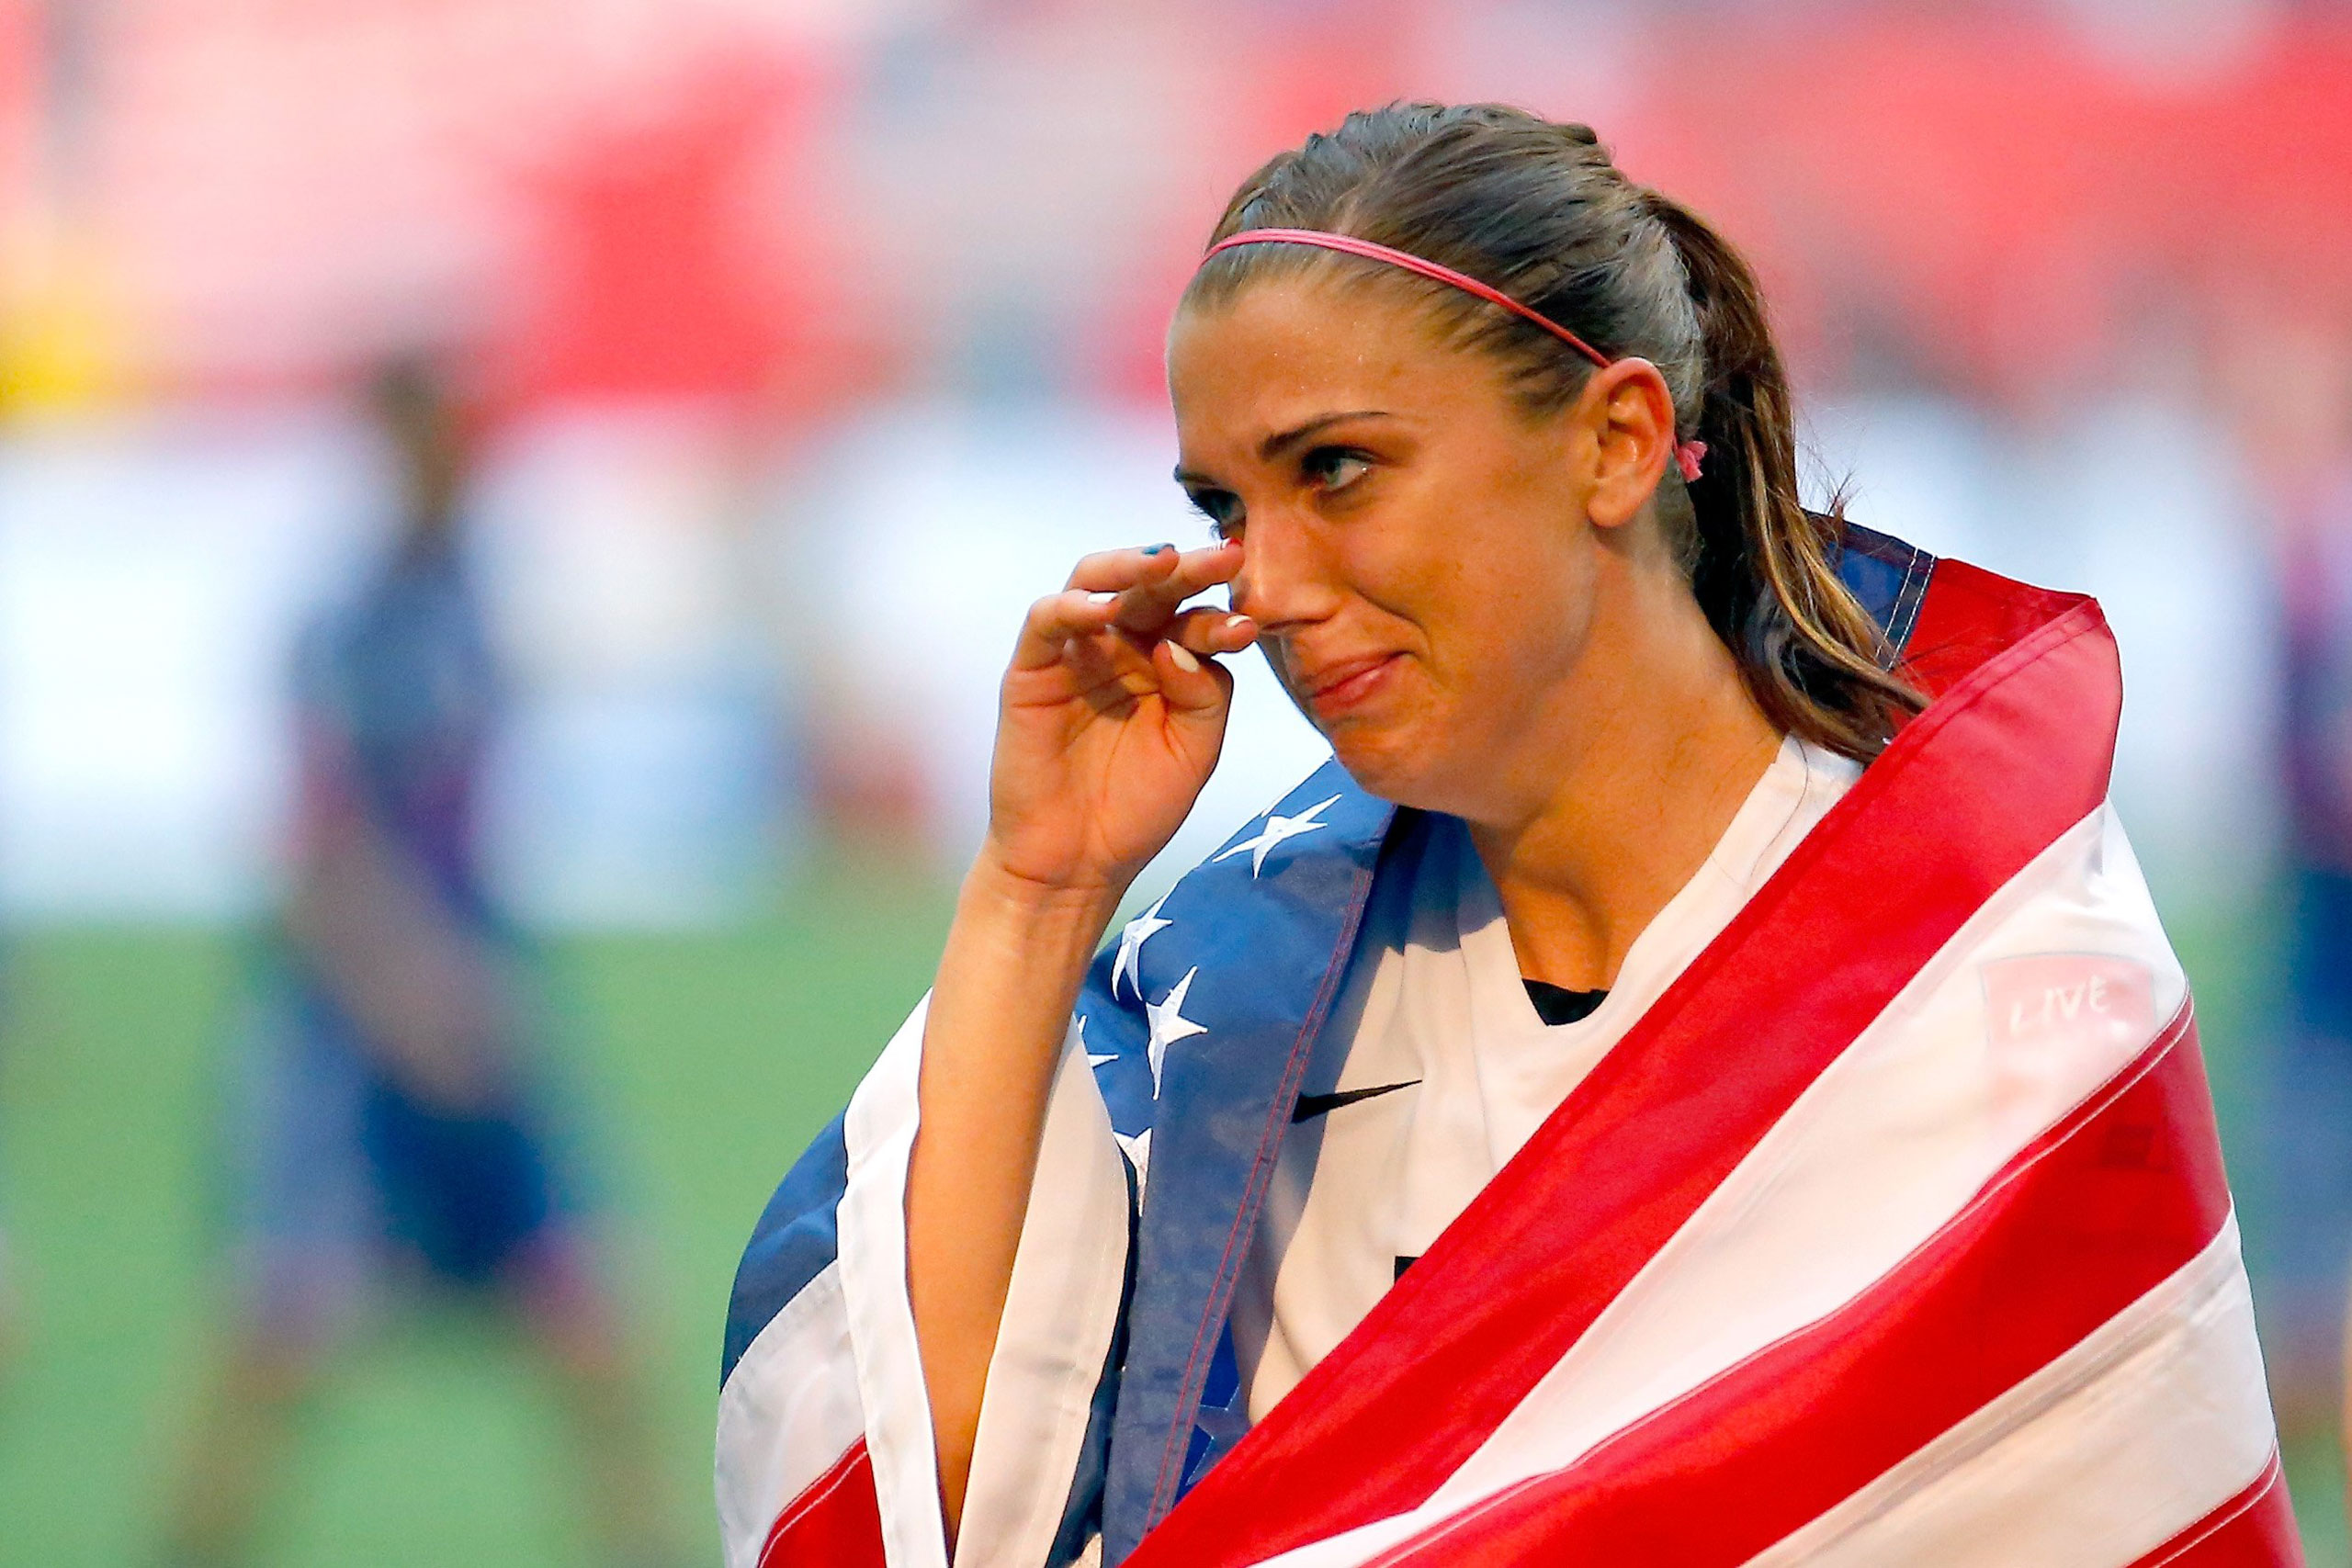 Alex Morgan celebrates the 5-2 victory against Japan in the final match of the 2015 FIFA Women's World Cup at the BC Place Stadium in Vancouver on July 5, 2015.